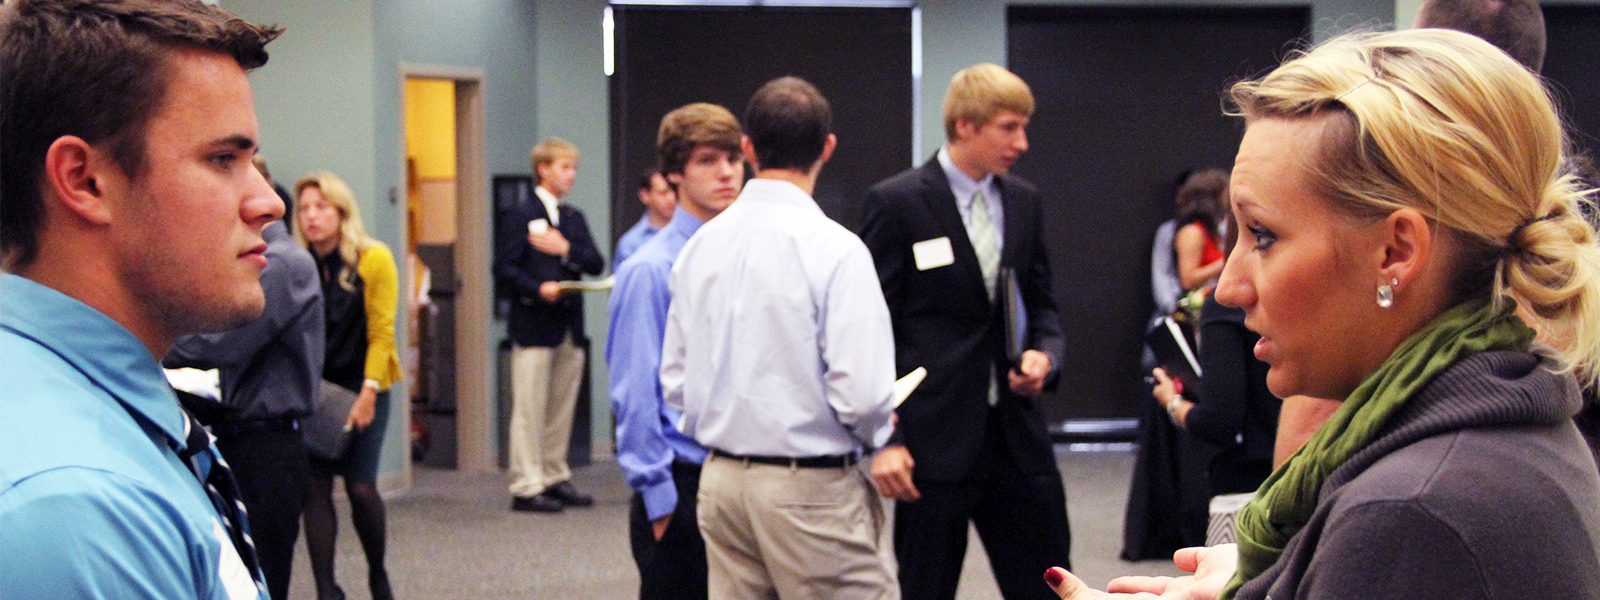 Durham School Career Fair